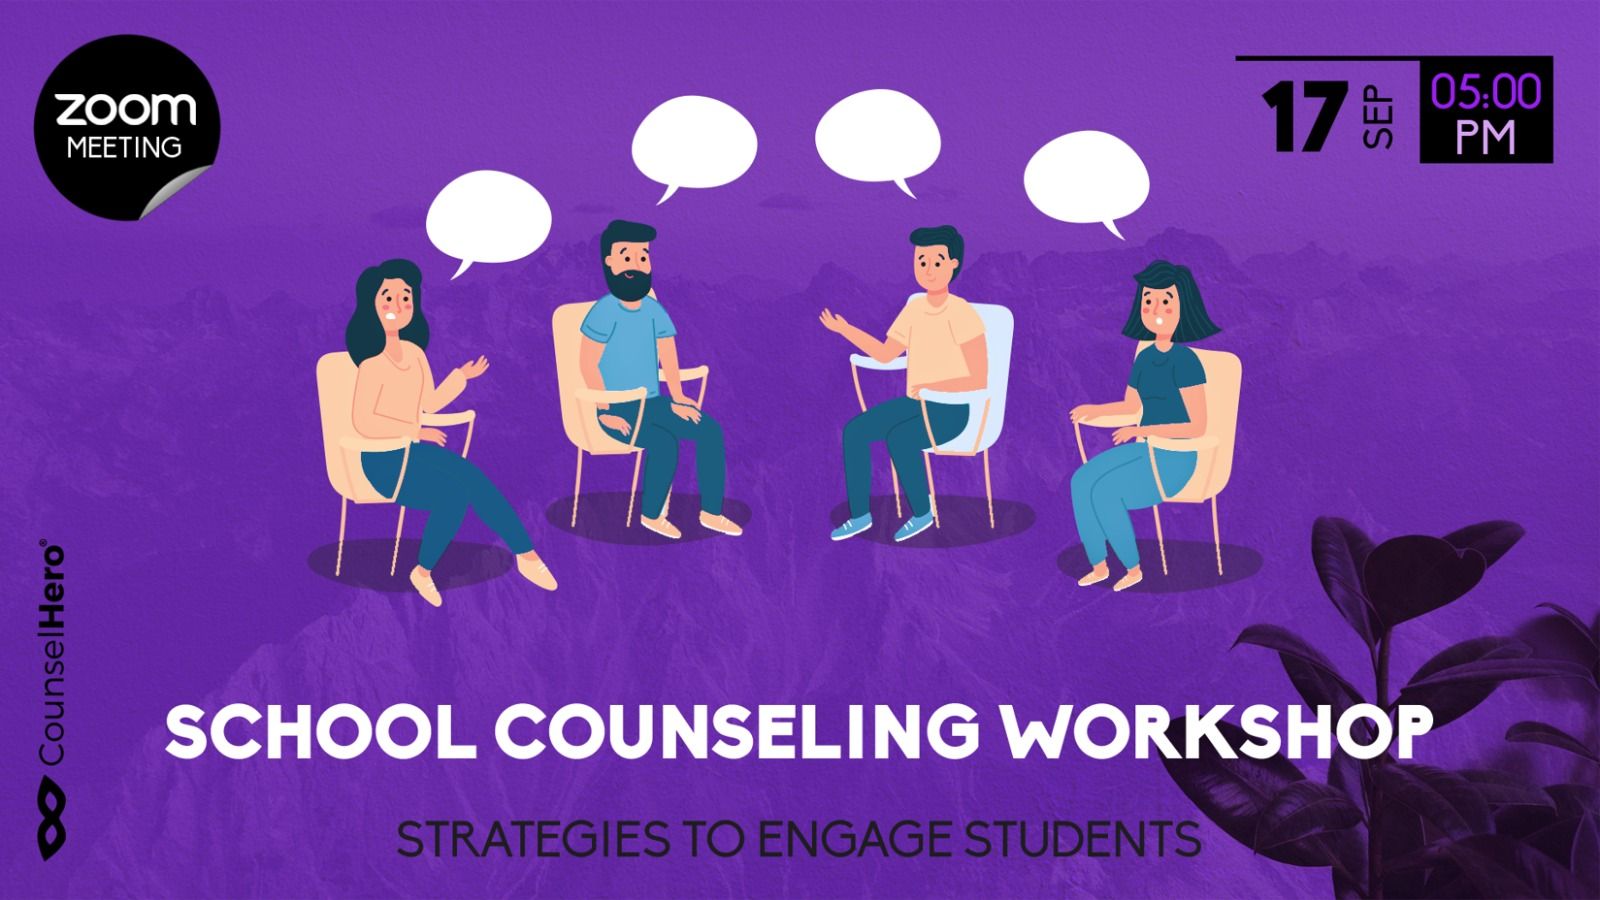 What are some good strategies to engage students when presenting counseling lessons?